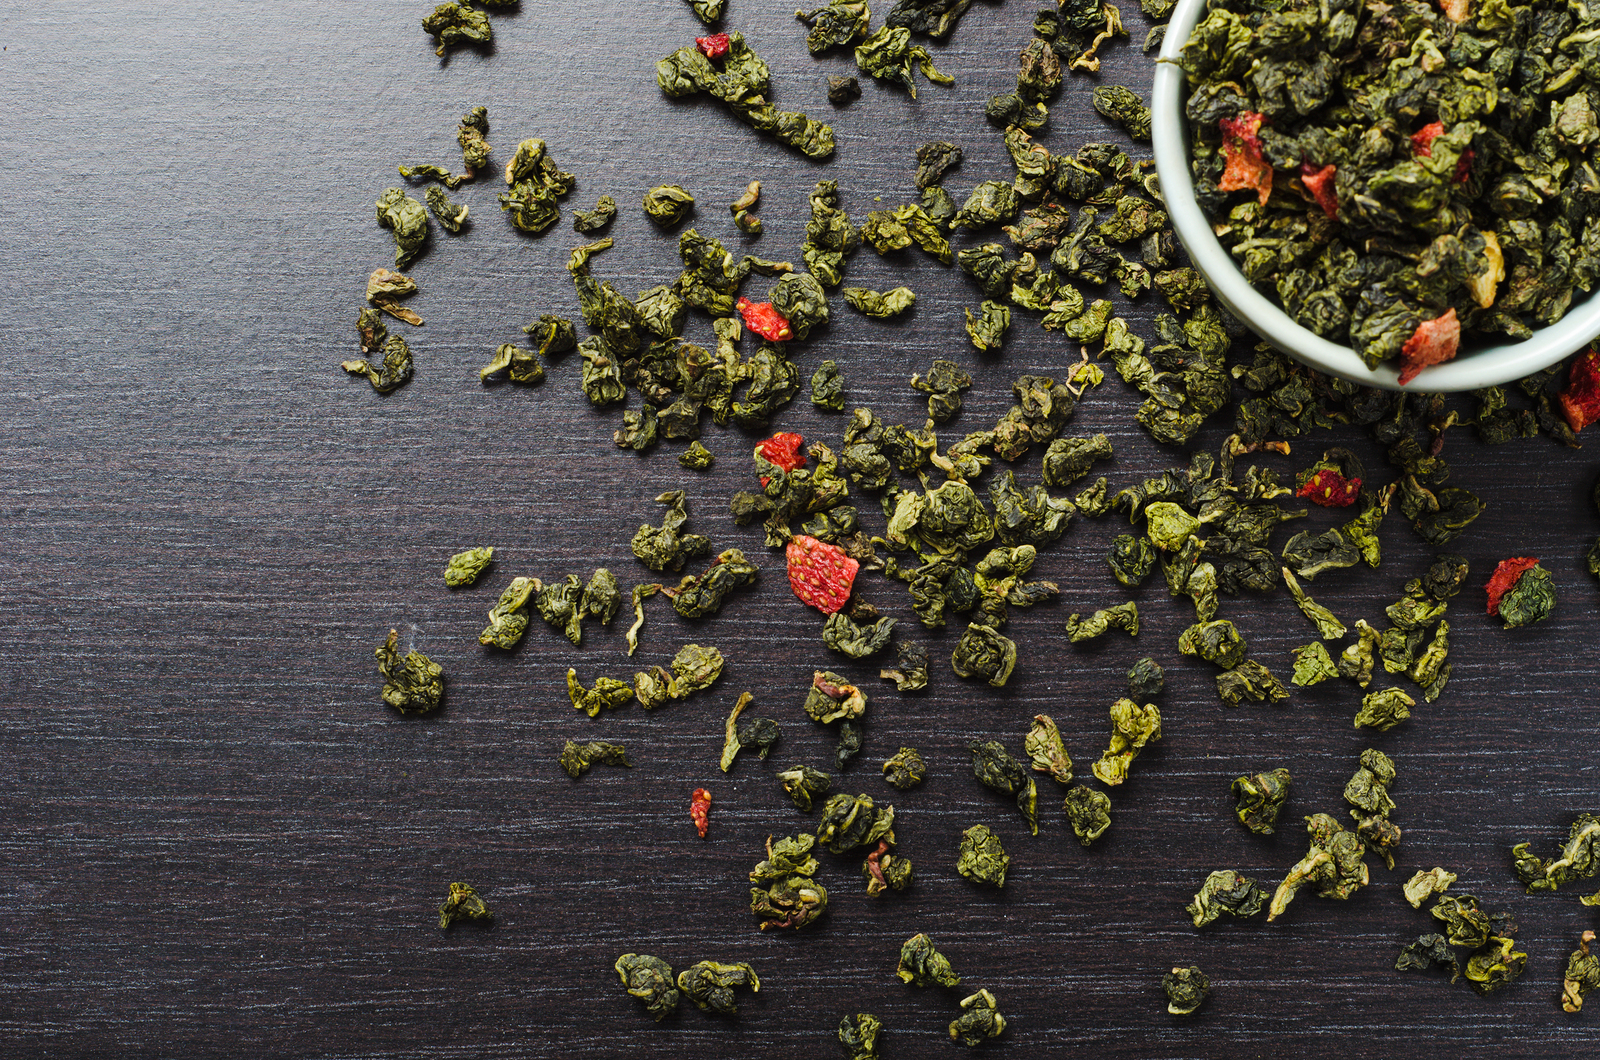 Oolong tea: The Long and Short of What You Need to Know